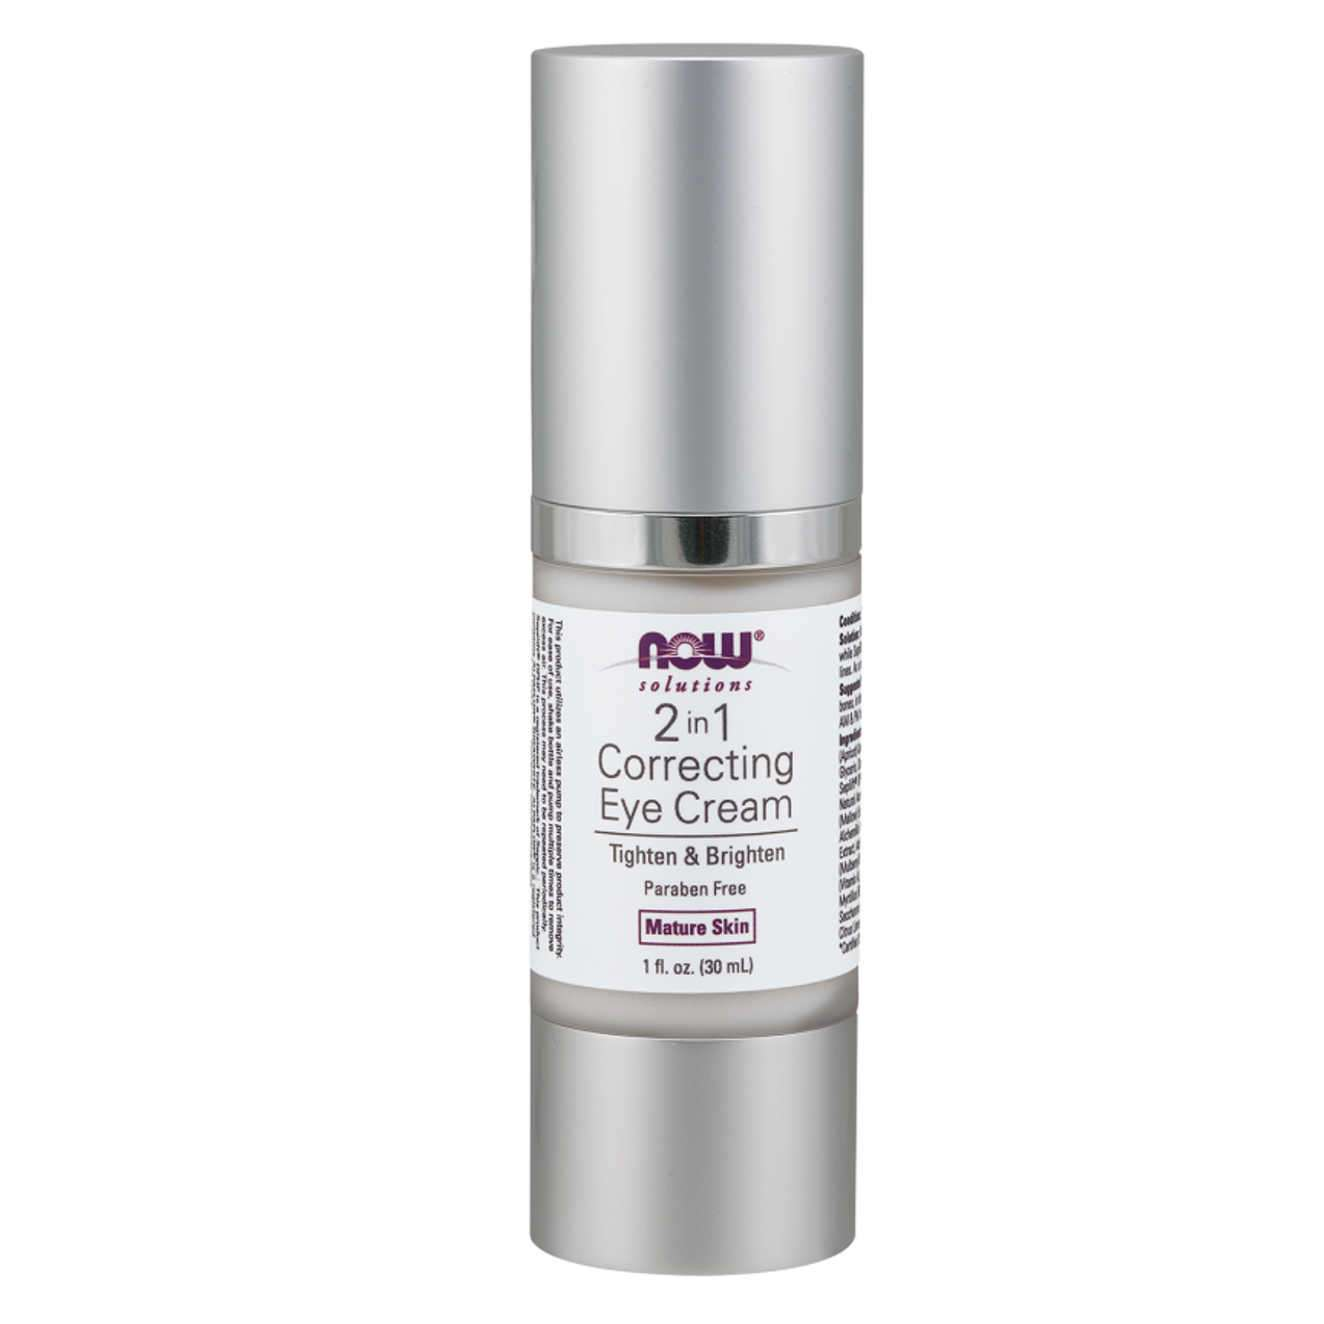 2 IN 1 CORRECTING EYE CREAM - 30ml